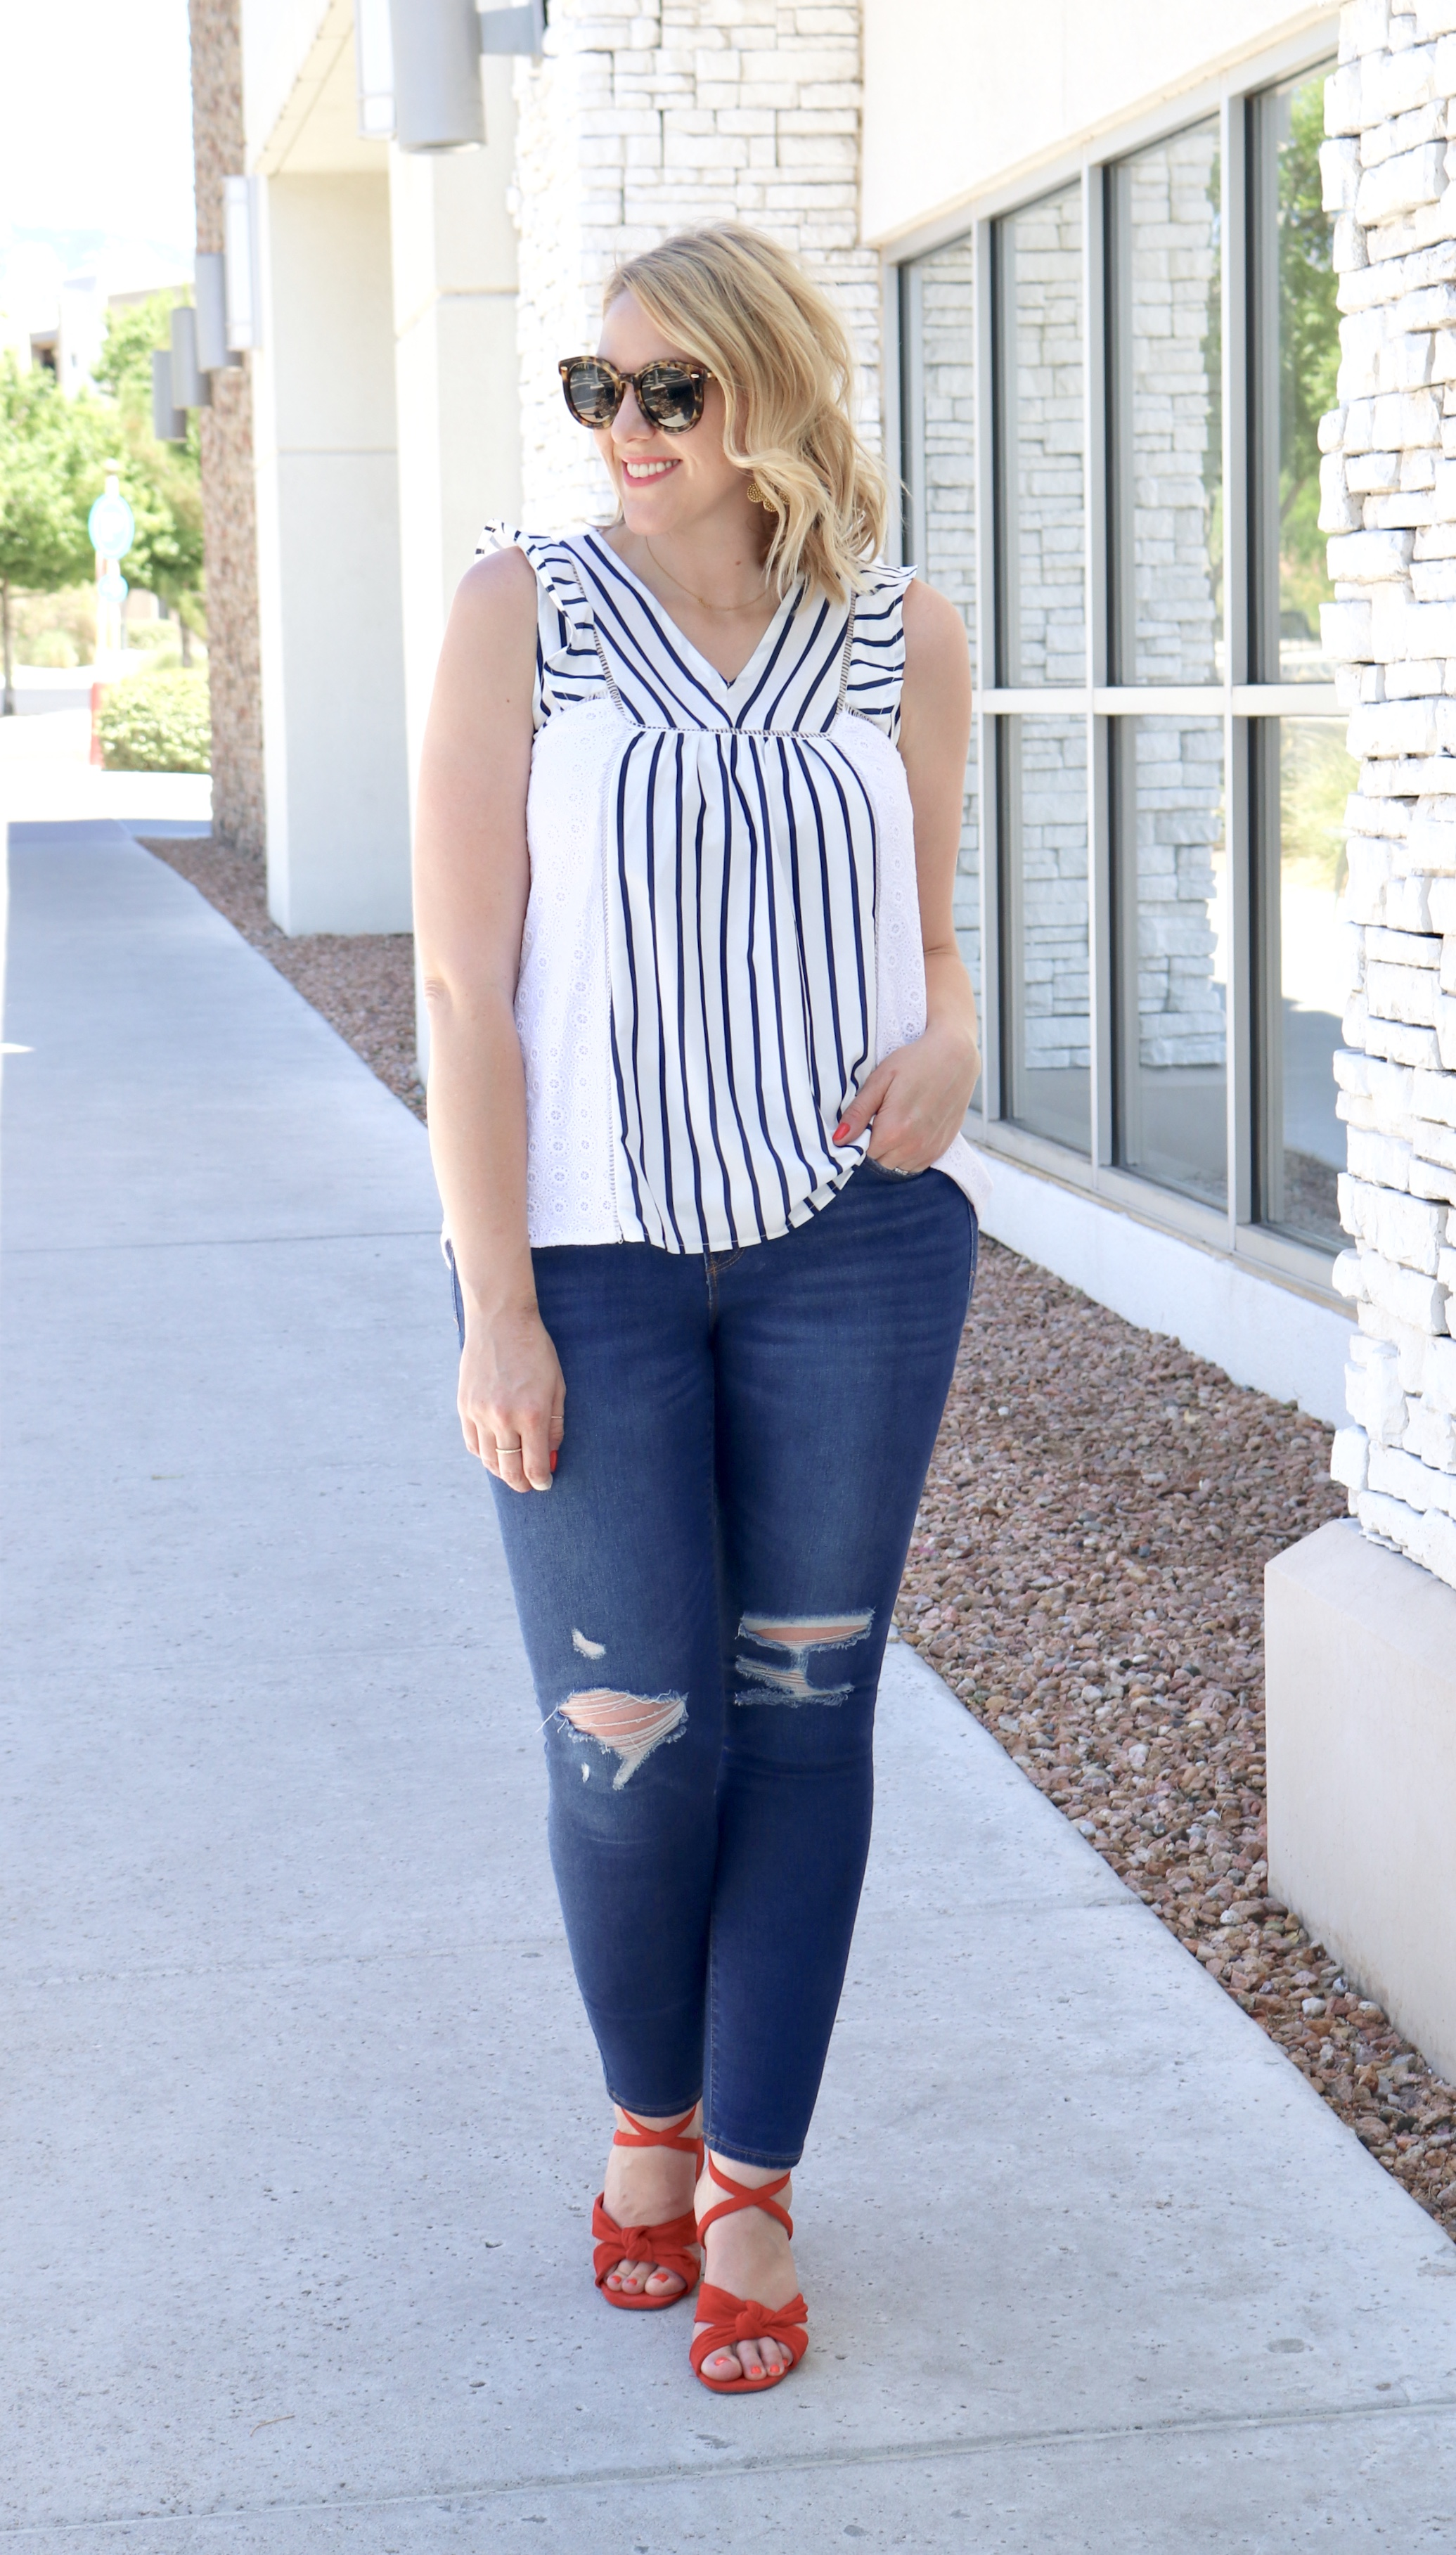 fourth of july outfit red sandals #4thofjuly #summerstyle #distressedjeans #redheels